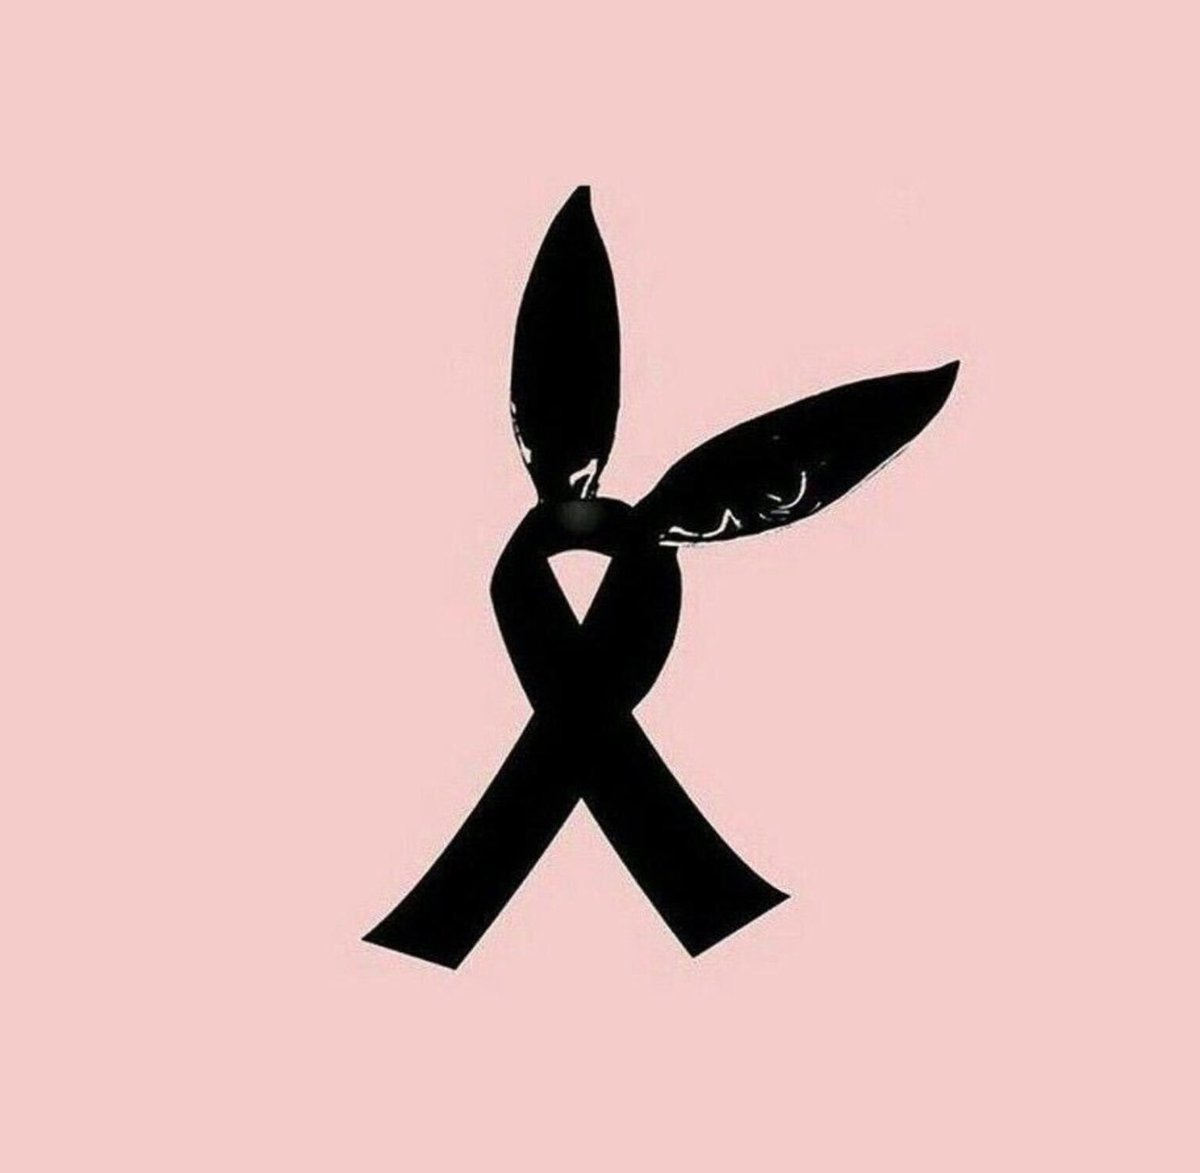 thoughts are forever and always with the 22 families who lost a loved one 2 years ago today💛 always proud of my city and the people so close to me, forever manchester🐝 #OneLoveManchester